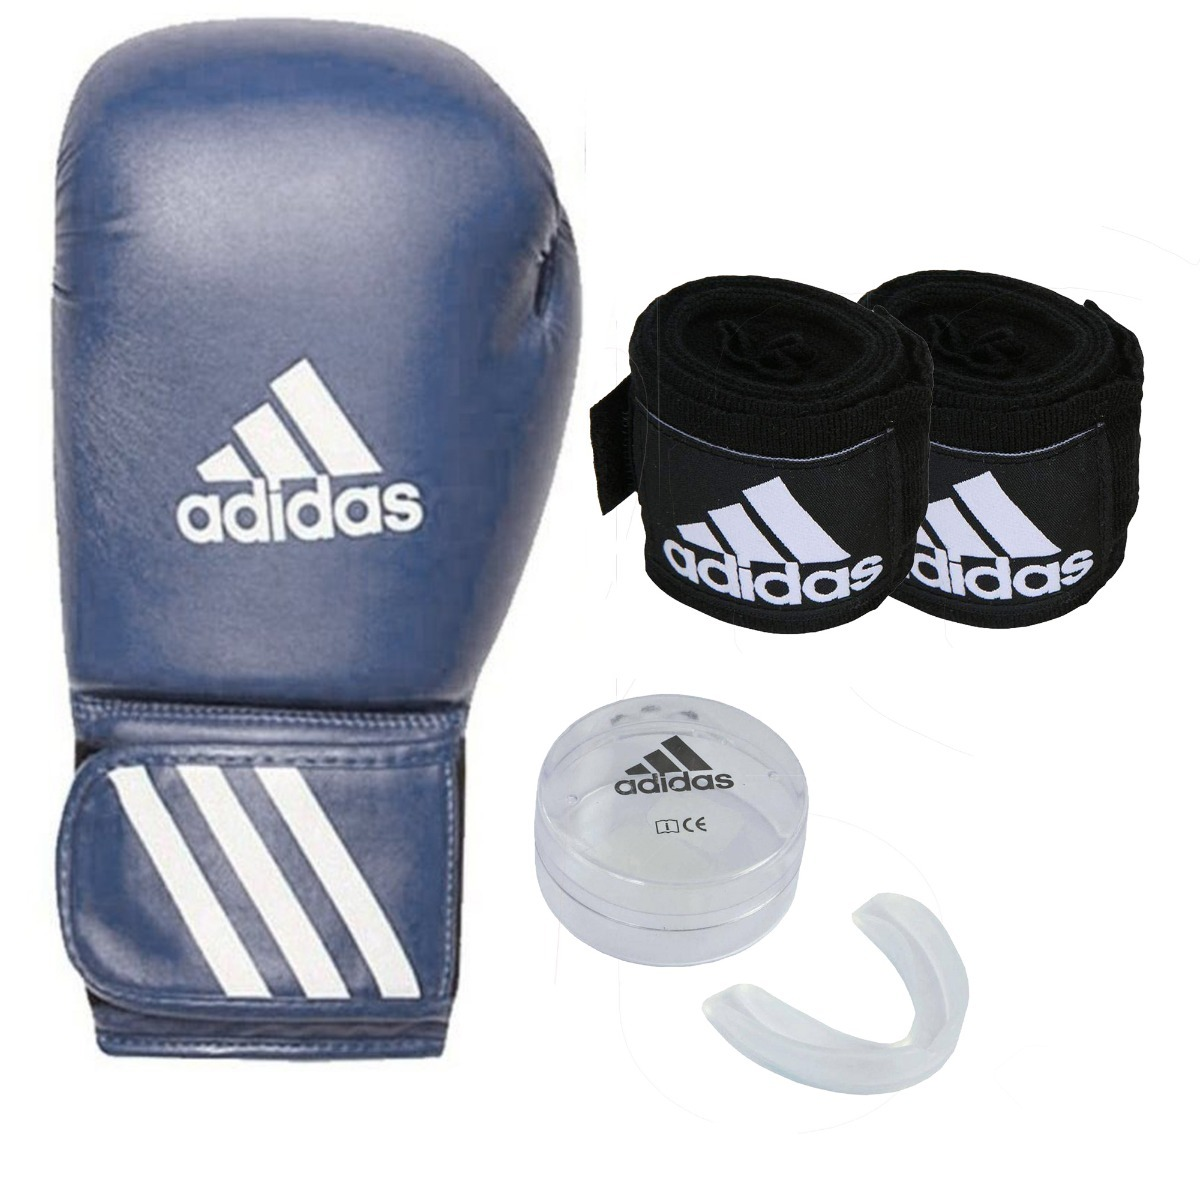 2c6b752be Luva Boxe adidas Speed 50 Cinza Muay Thai Bandagem Bucal - R  179